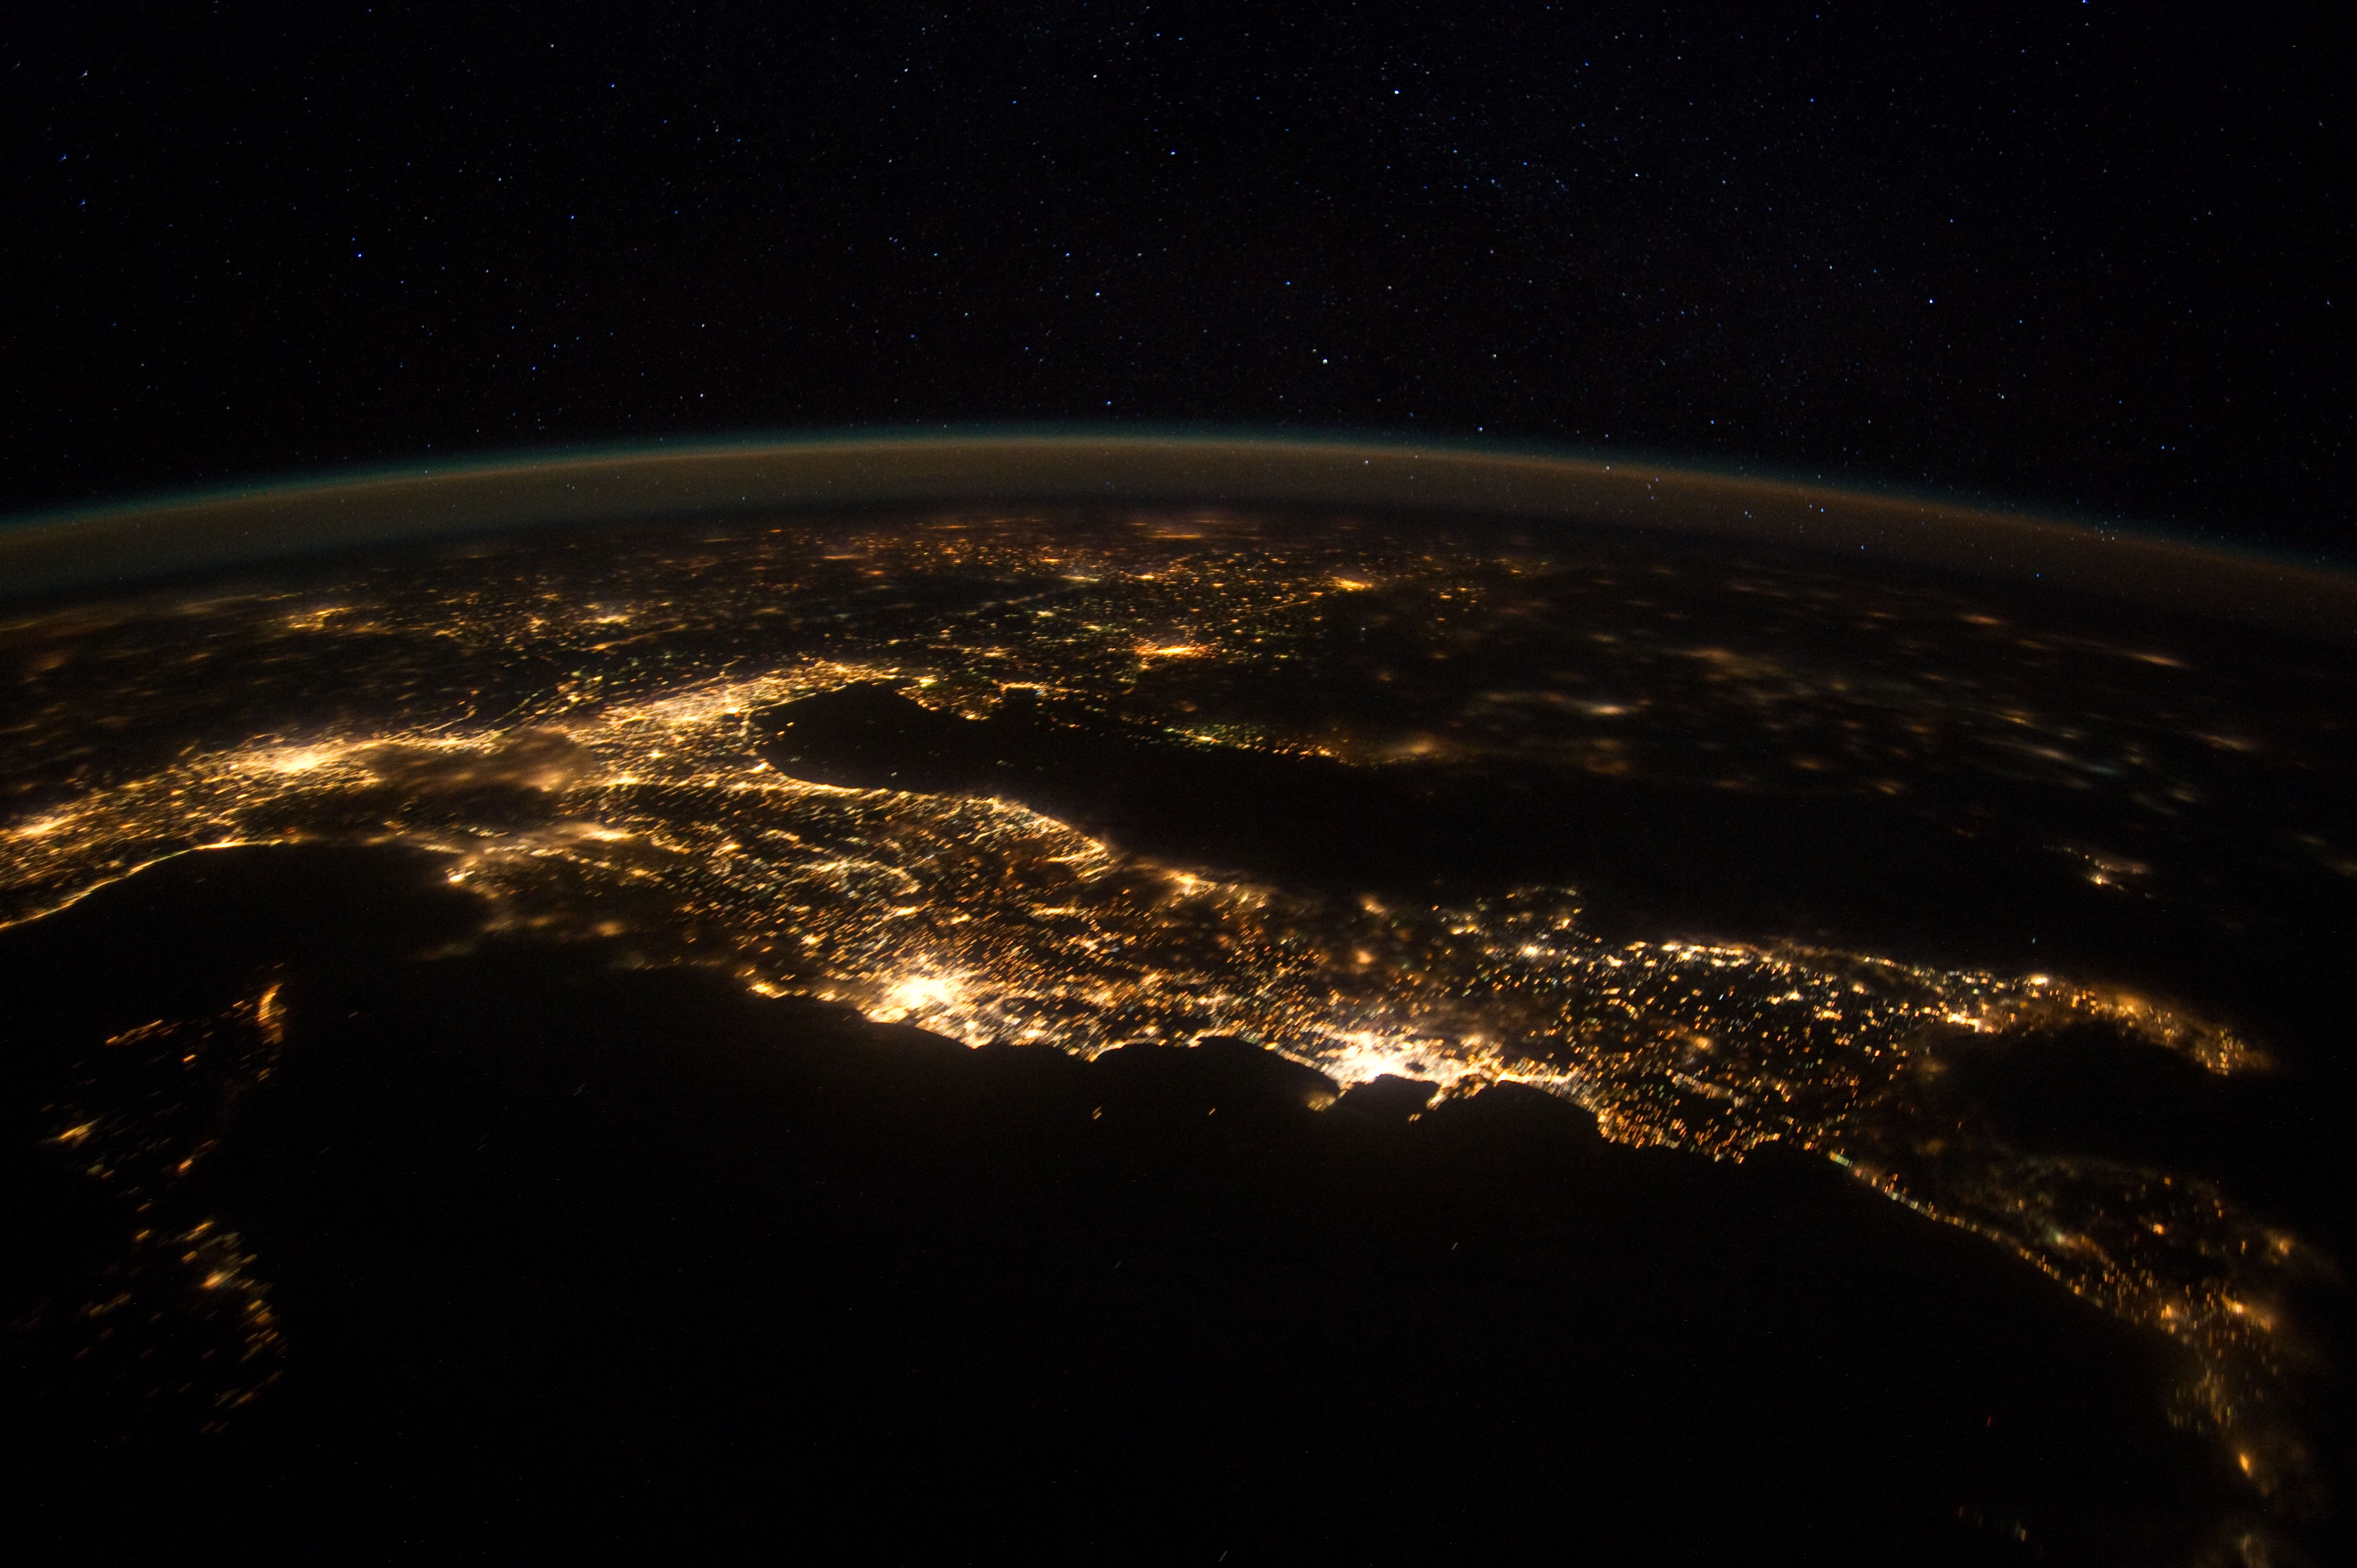 Italy from space reveals a huge amount of light pollution